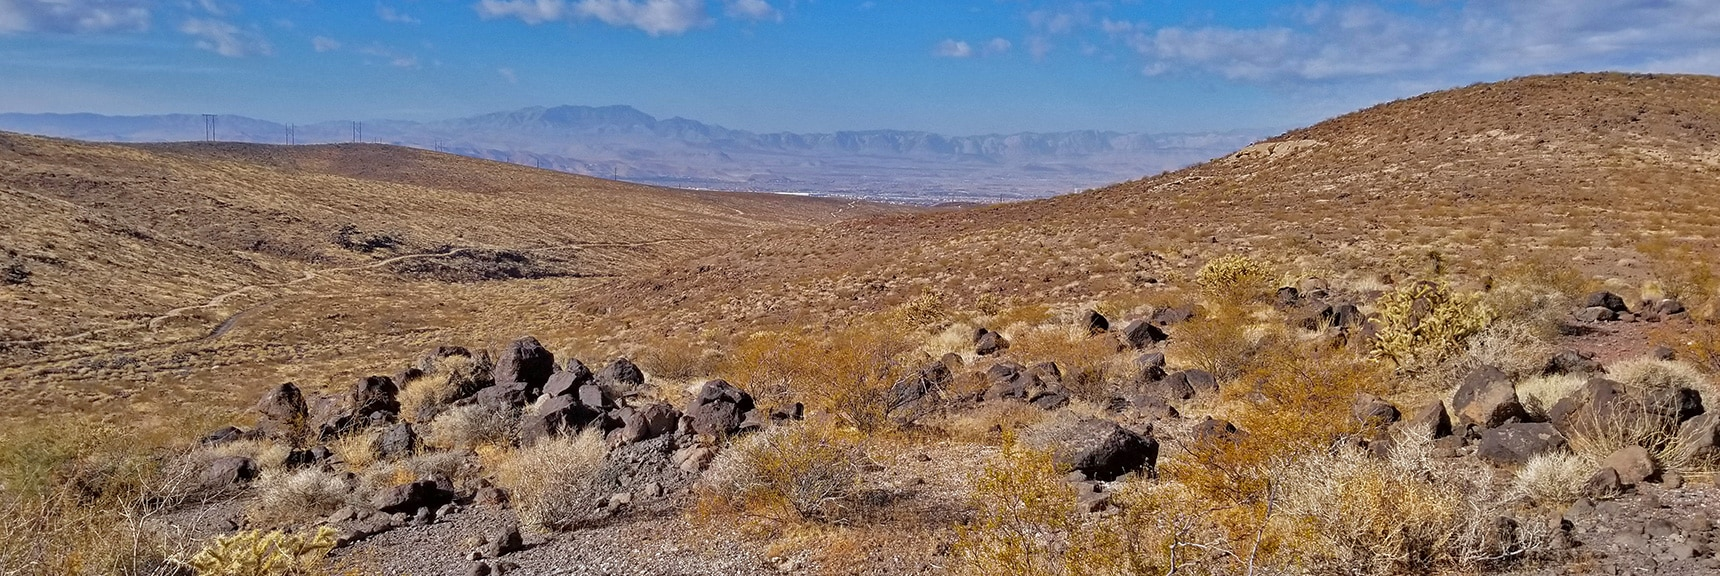 View Across Las Vegas Valley Toward Potosi Mt, Rainbow Mountains and Red Rock Park   McCullough Hills Trail in Sloan Canyon National Conservation Area, Nevada